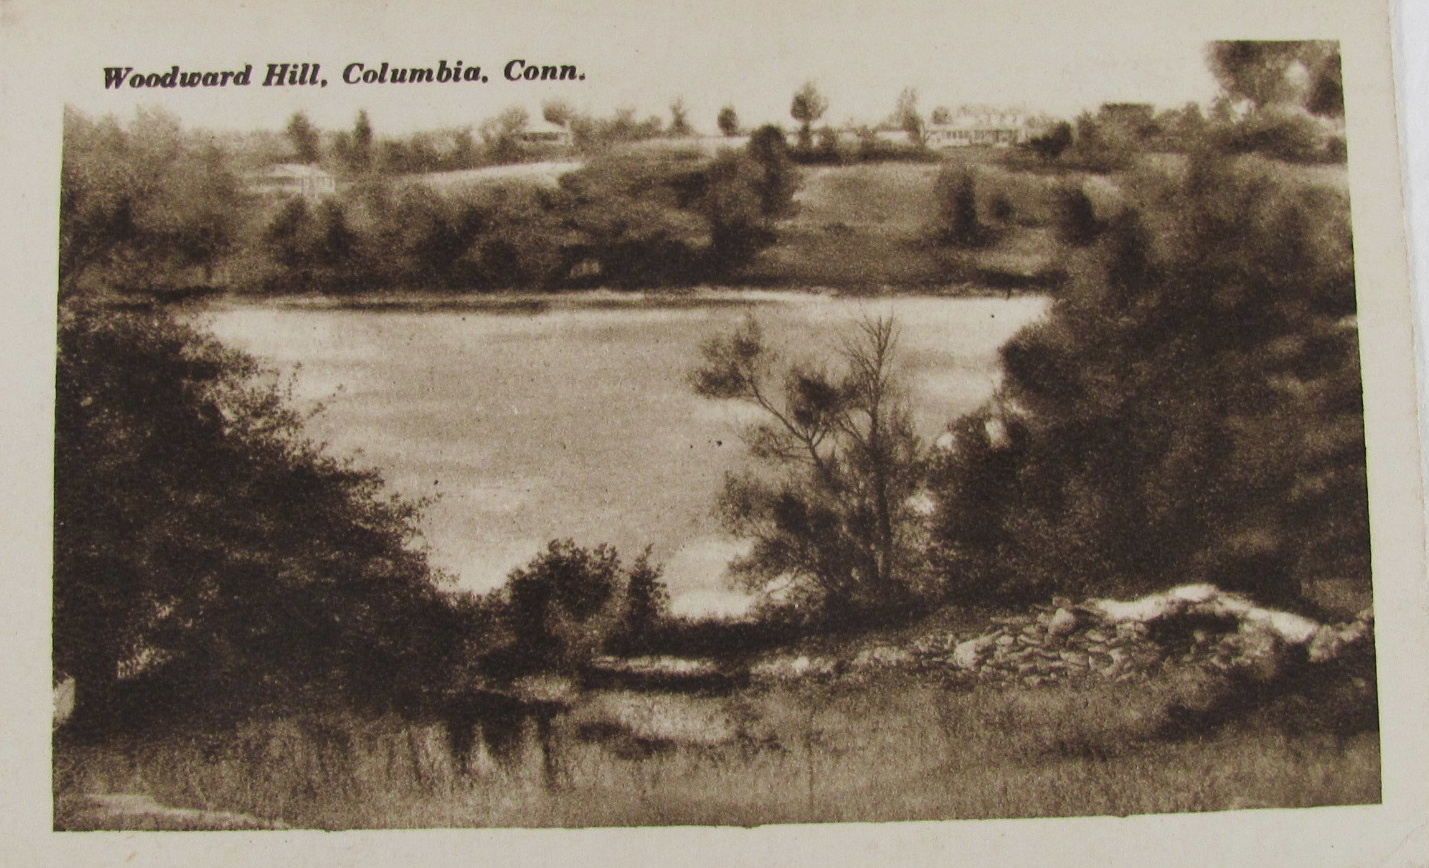 Woodward Hill ca 1900